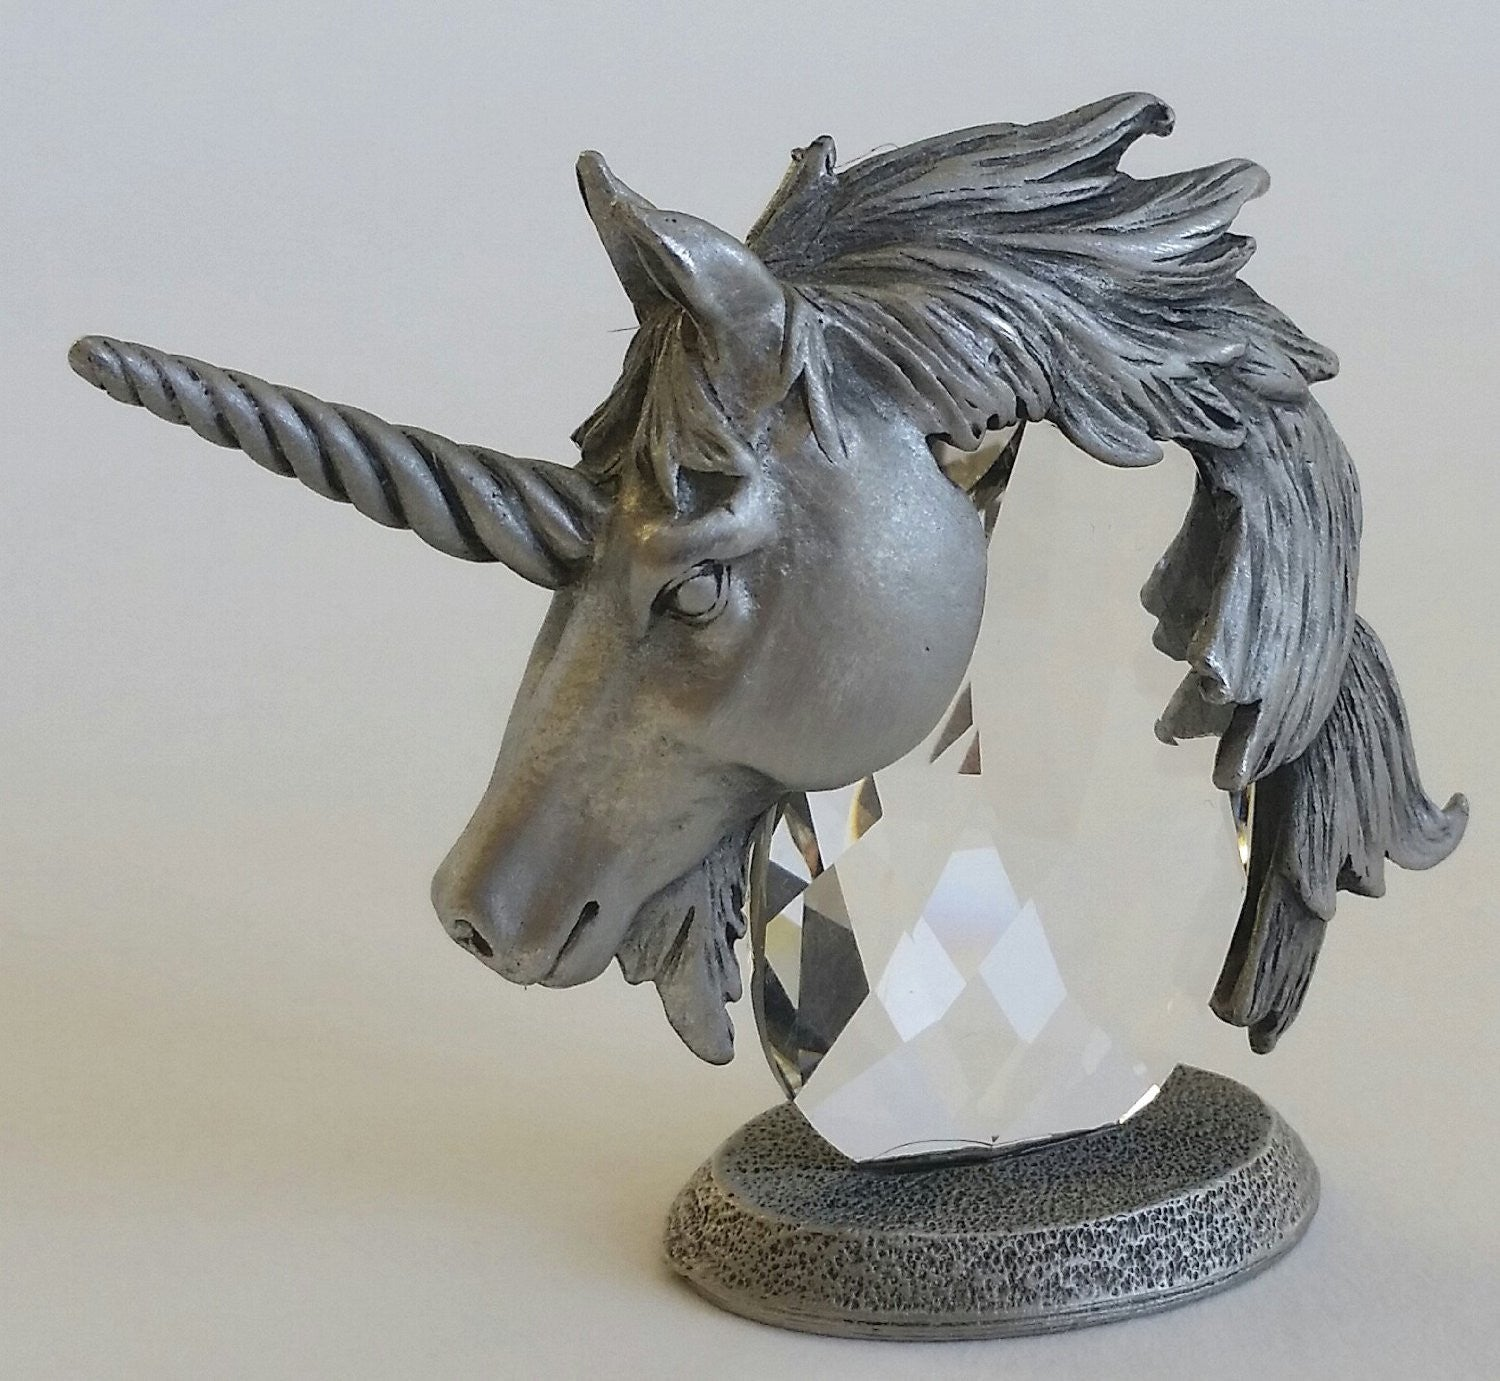 Unicorn Figurine Handcrafted with Genuine Pewter and Swarovski Crystal By the Artisans At Bjcrystalgifts